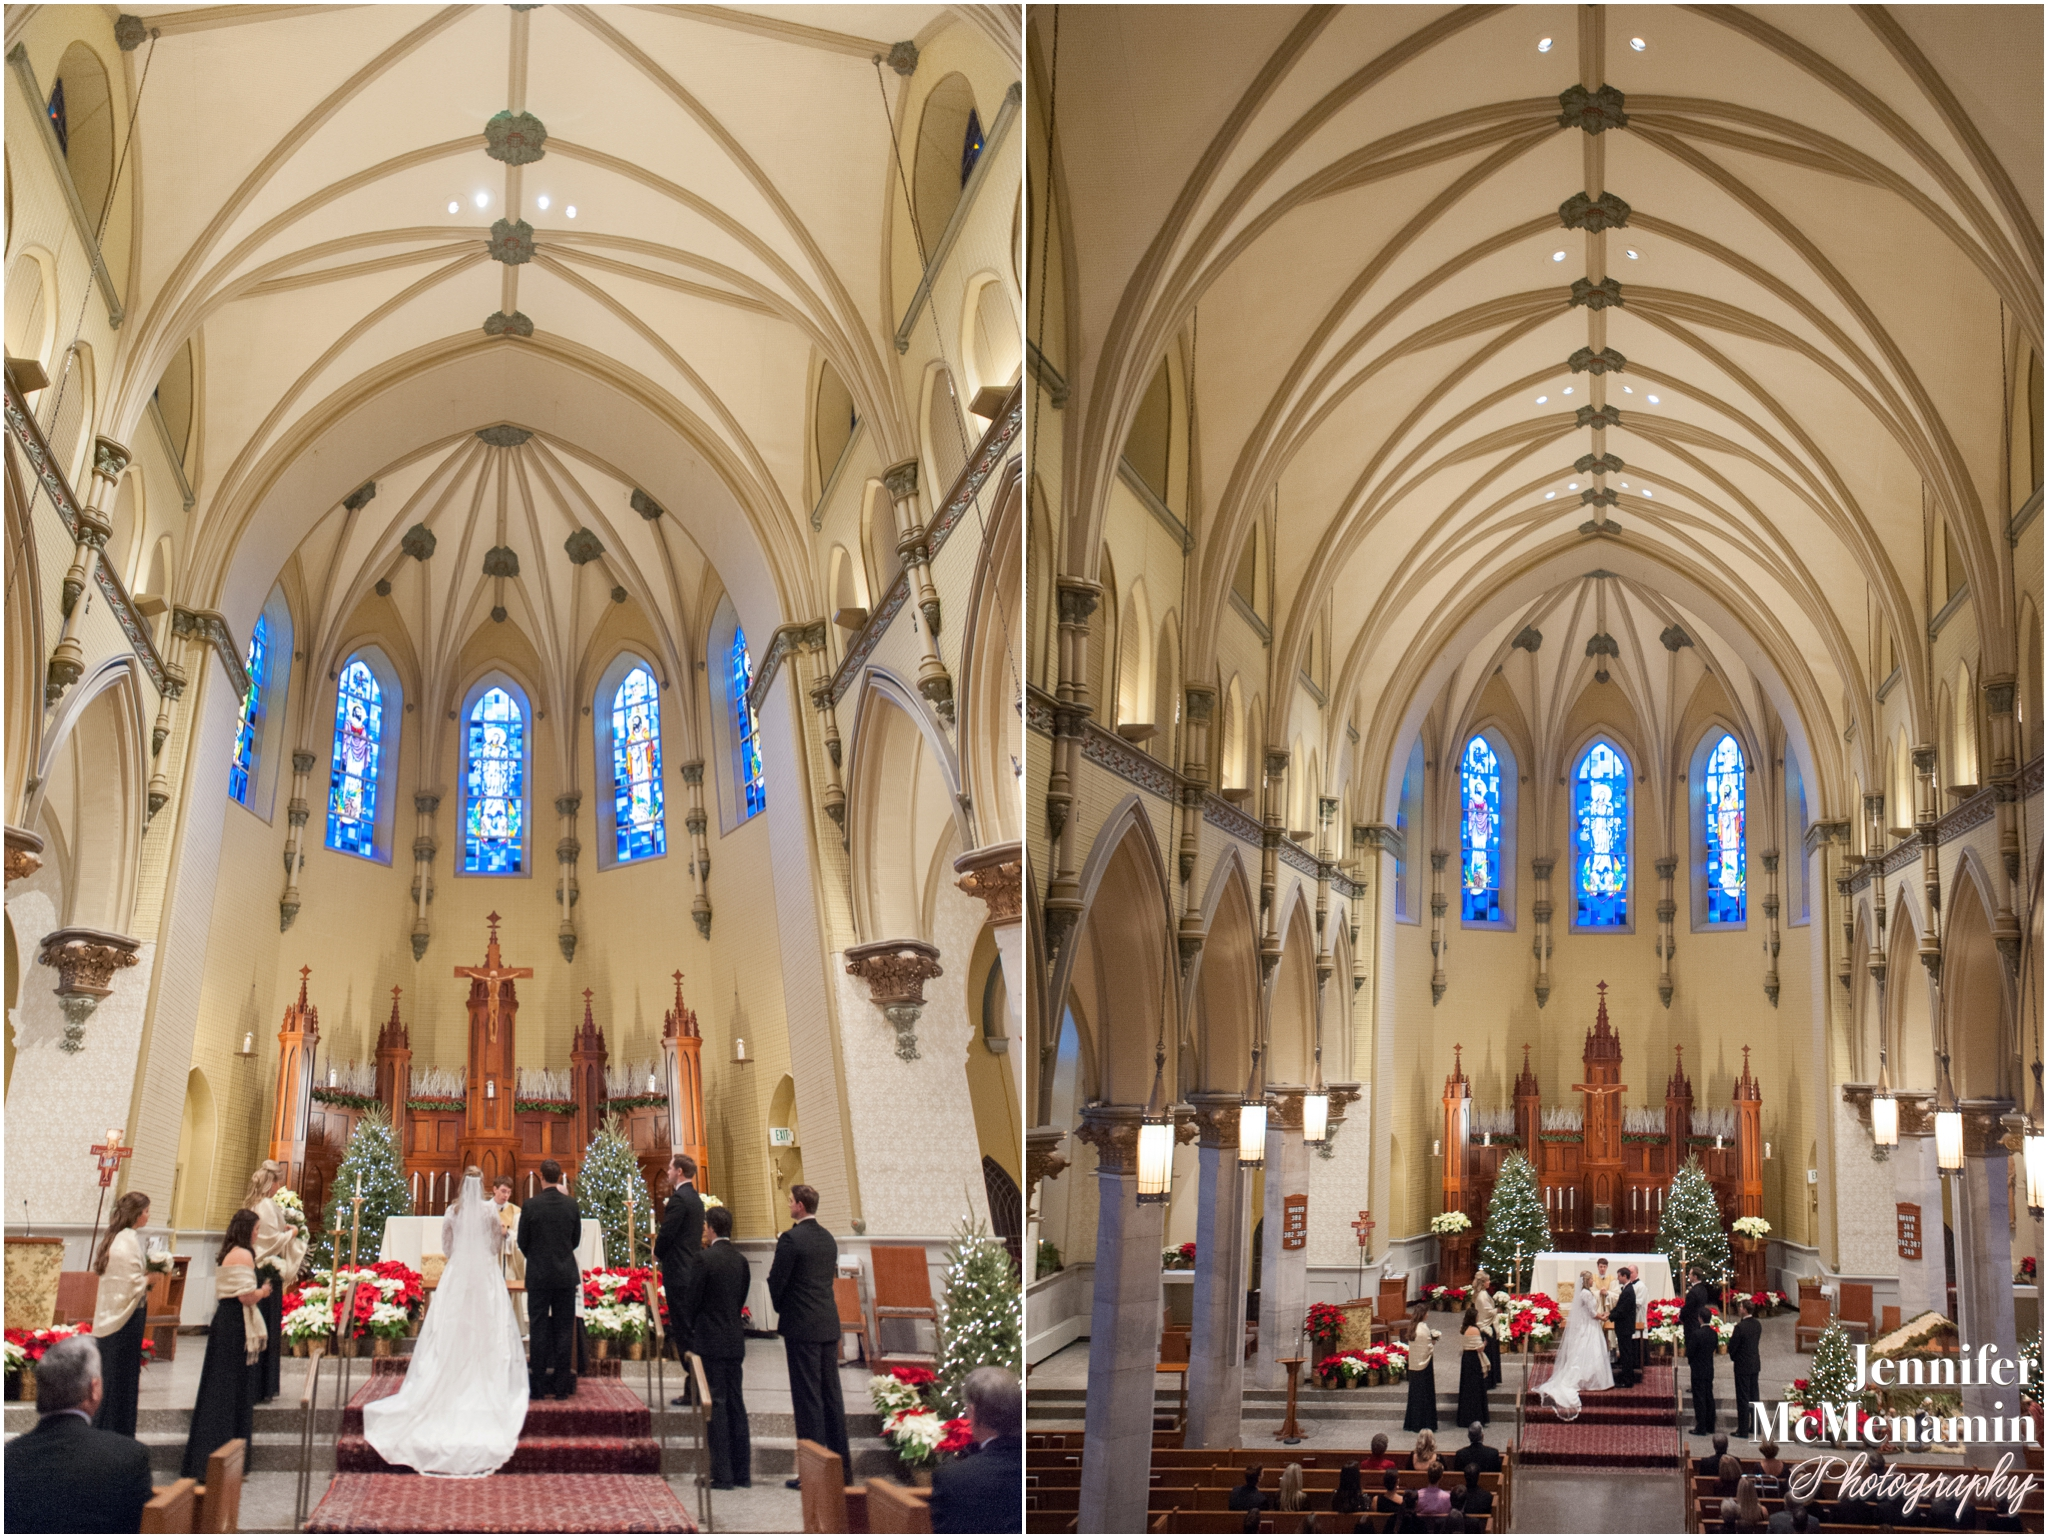 0045_RyanClemmens_01318-0350_JenniferMcMenaminPhotography_Immaculate-Conception-Church_The-Cloisters_Baltimore-wedding-photography_Baltimore-wedding-photographer